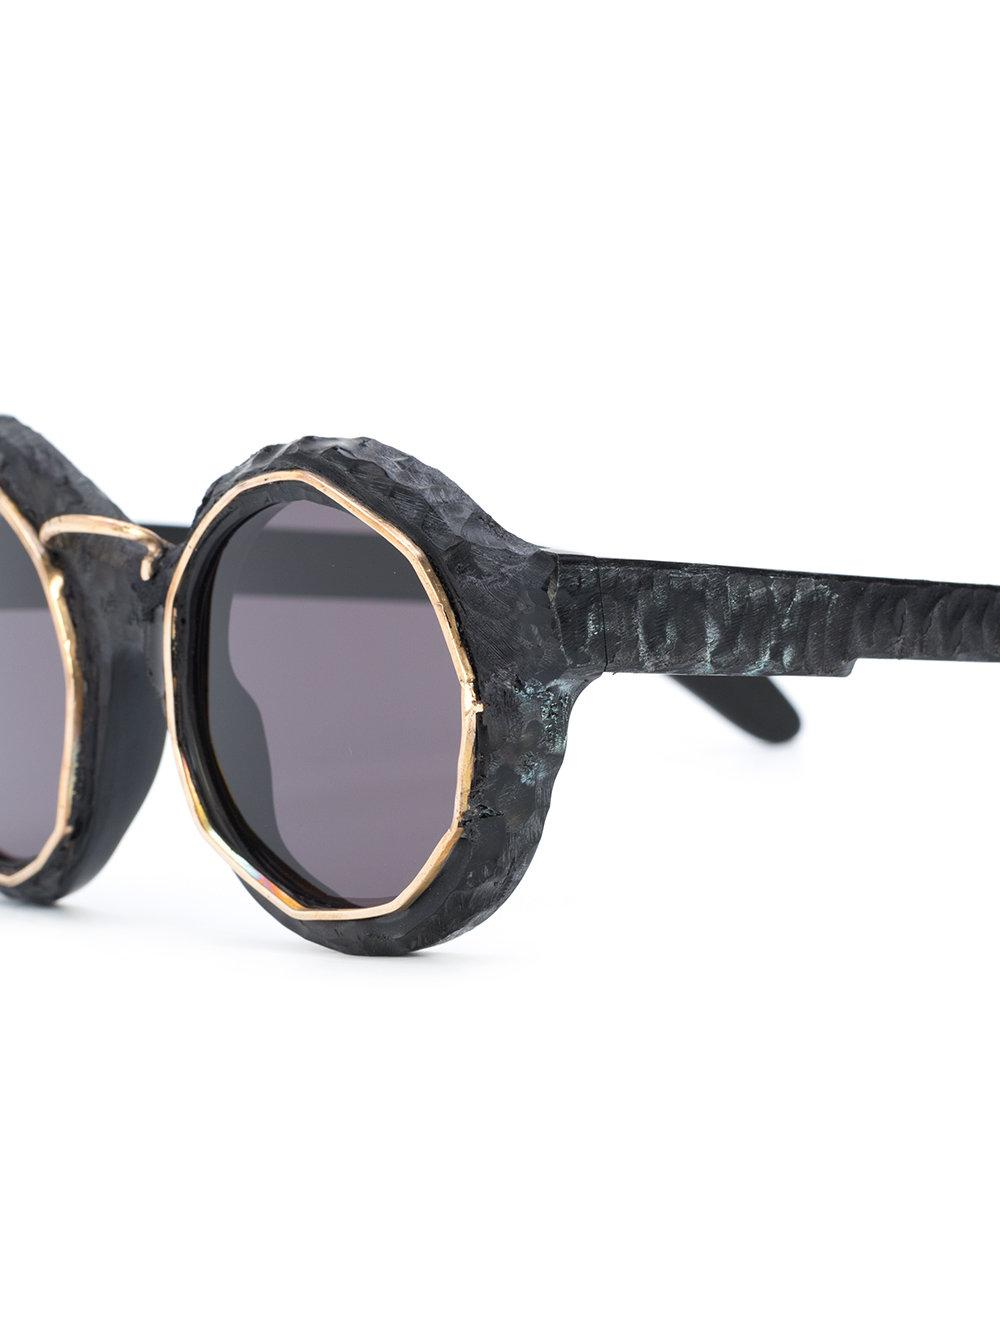 Kuboraum Trendy Round Sunglasses in Metallic